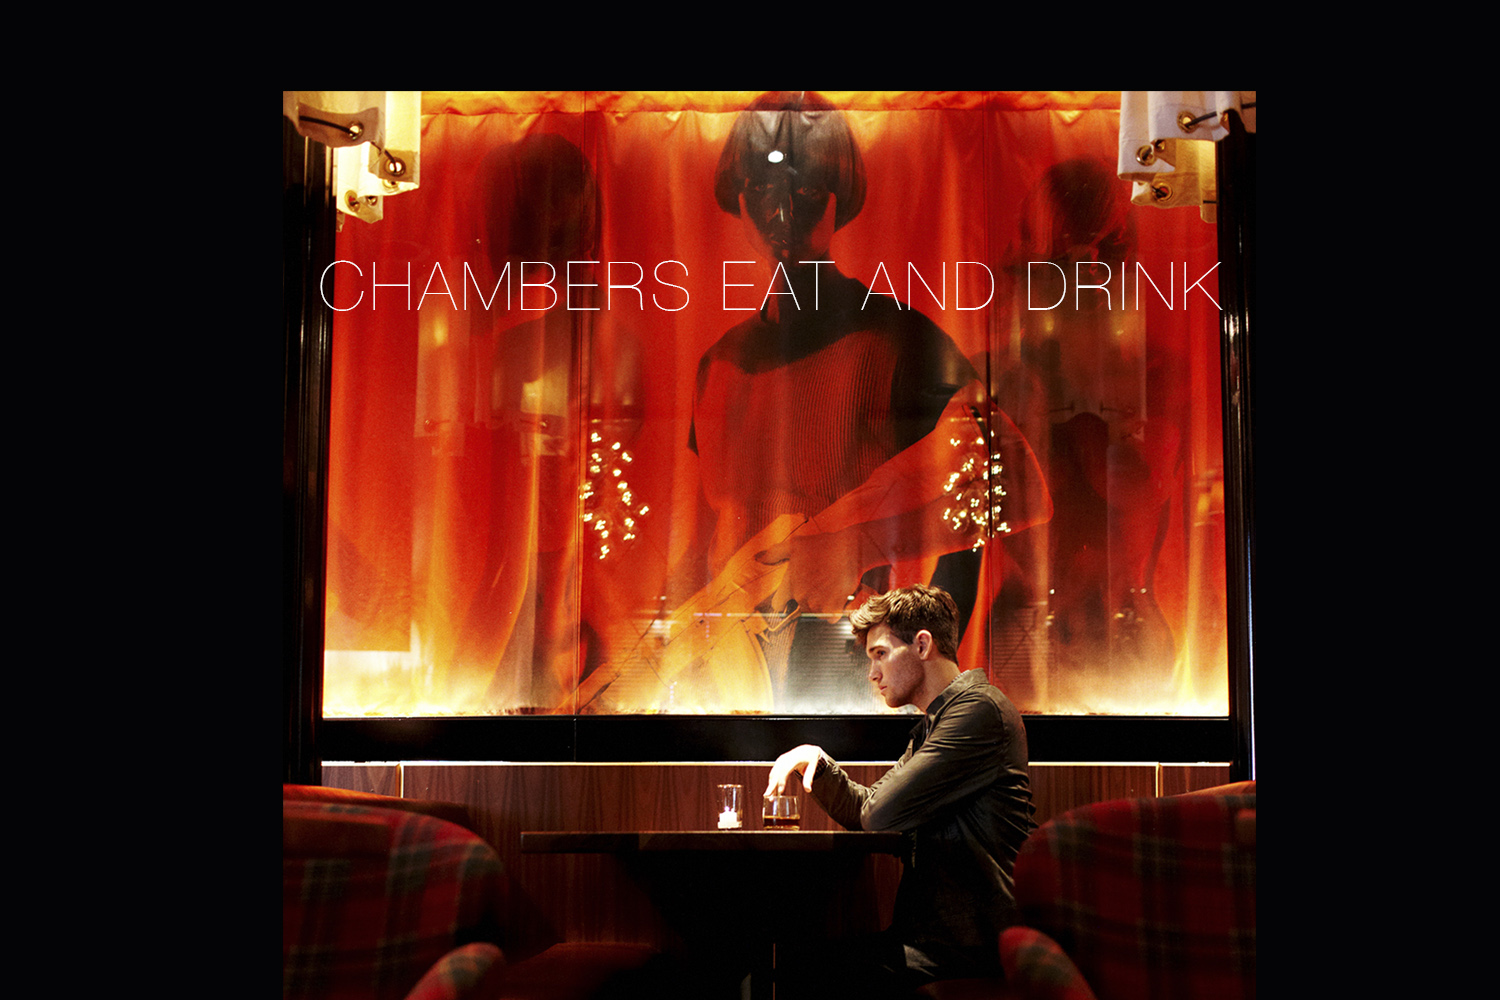 Chambers Eat and Drink, restaurant and lounge by Mister Important Design